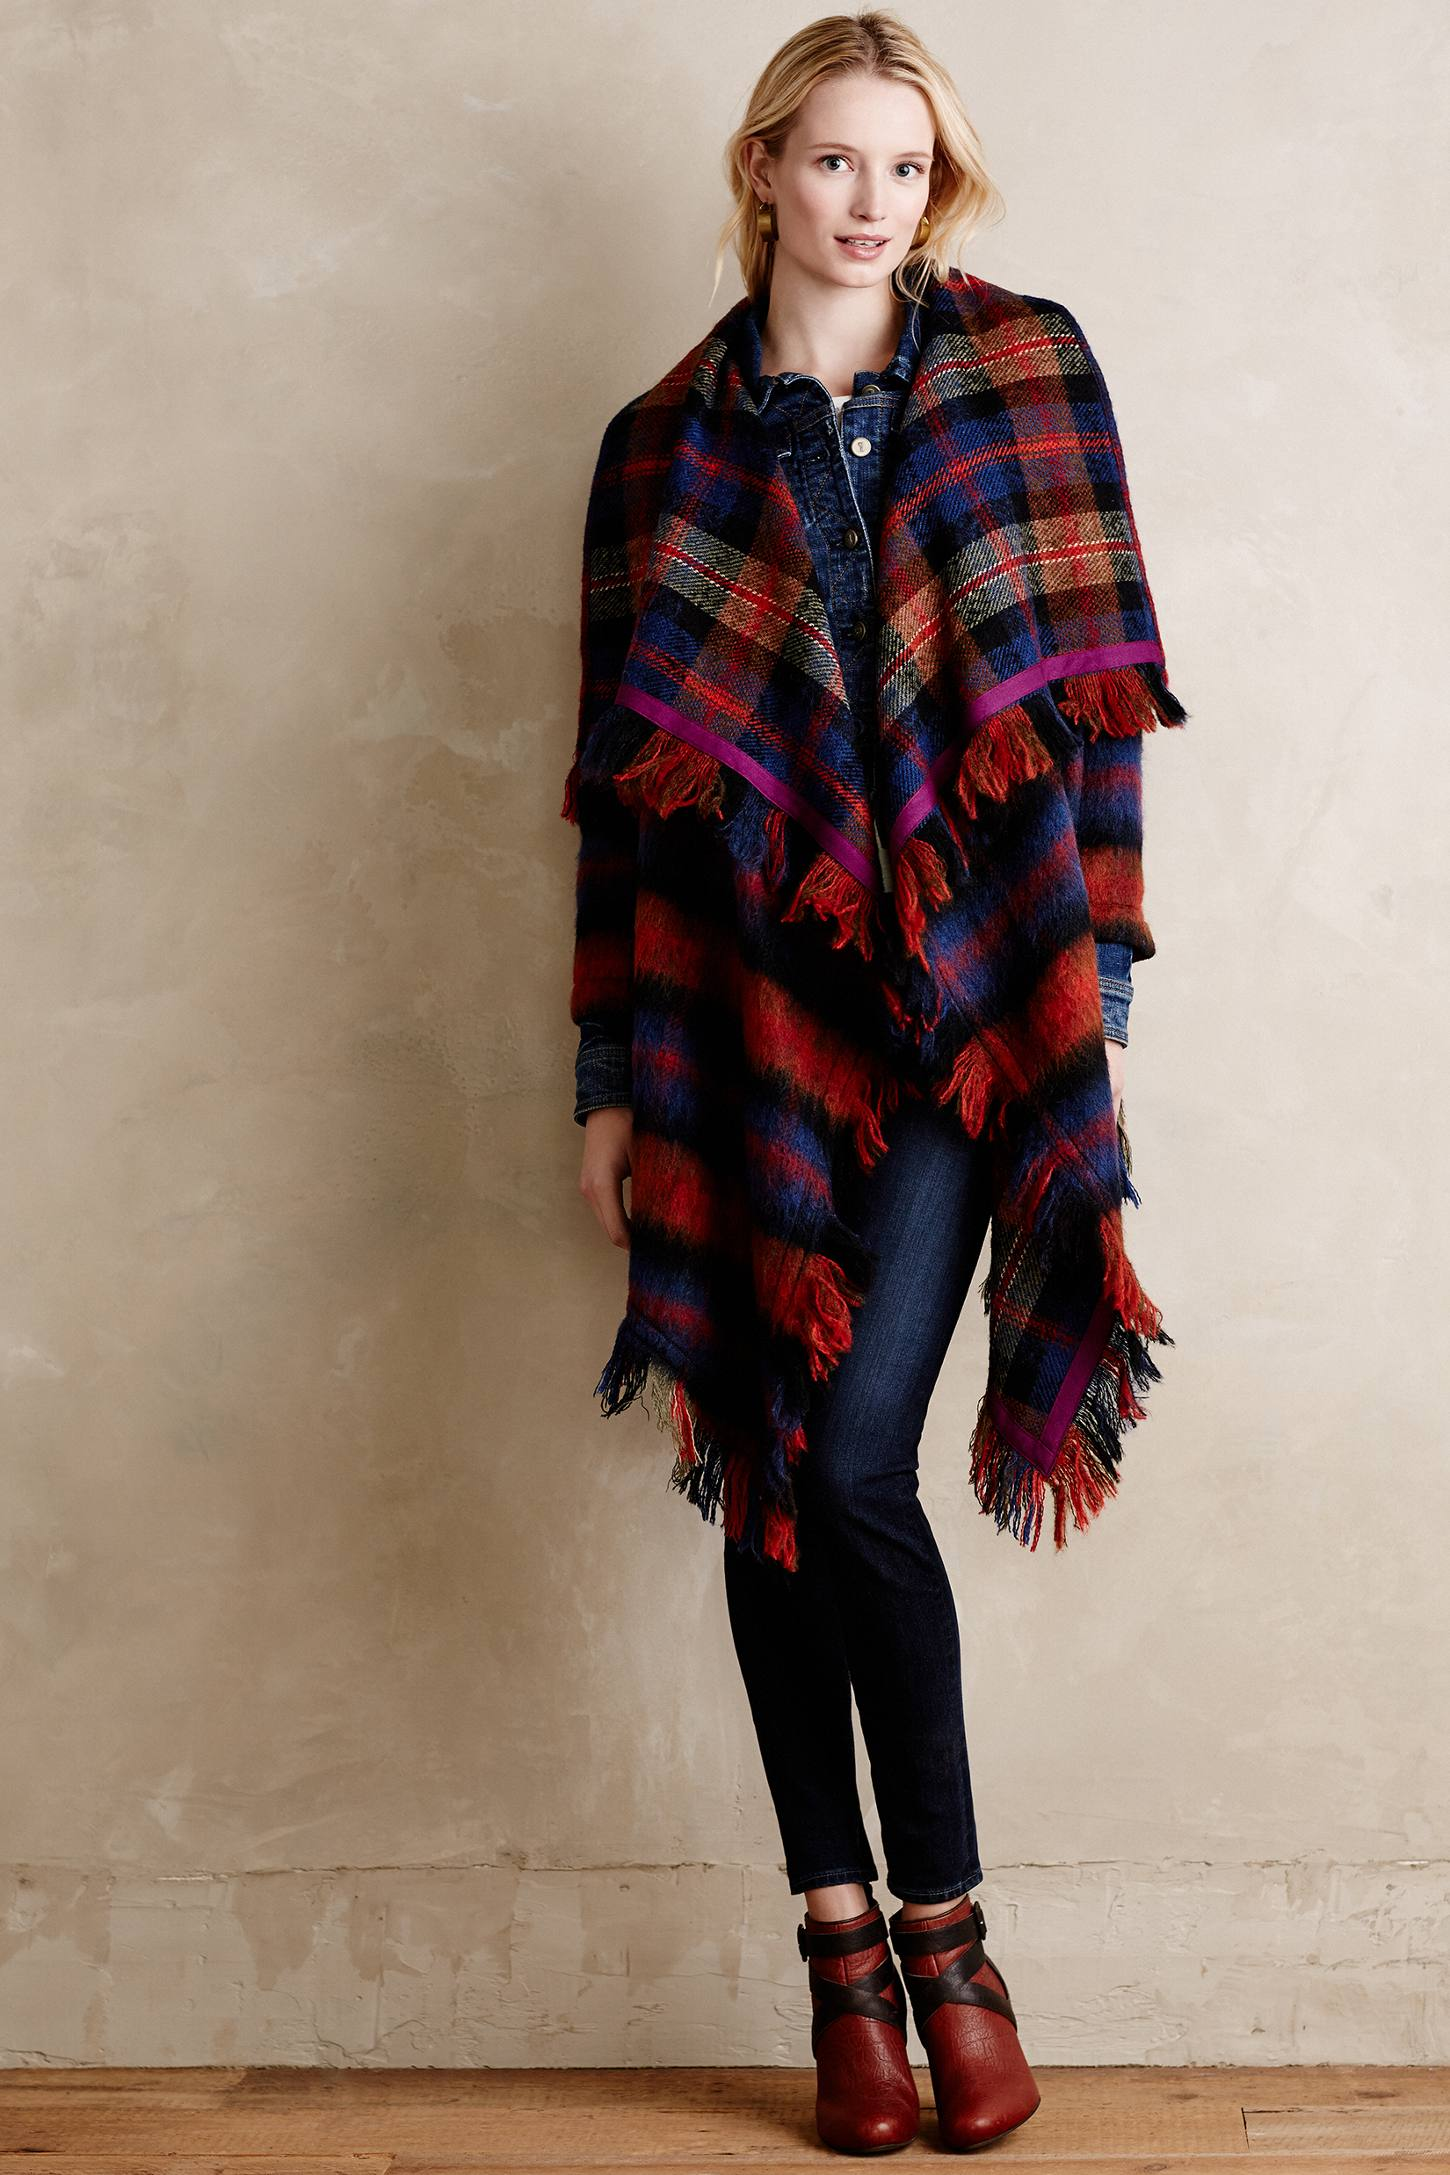 What's Haute Right Now: Blanket Capes & Ponchos - What's Haute™